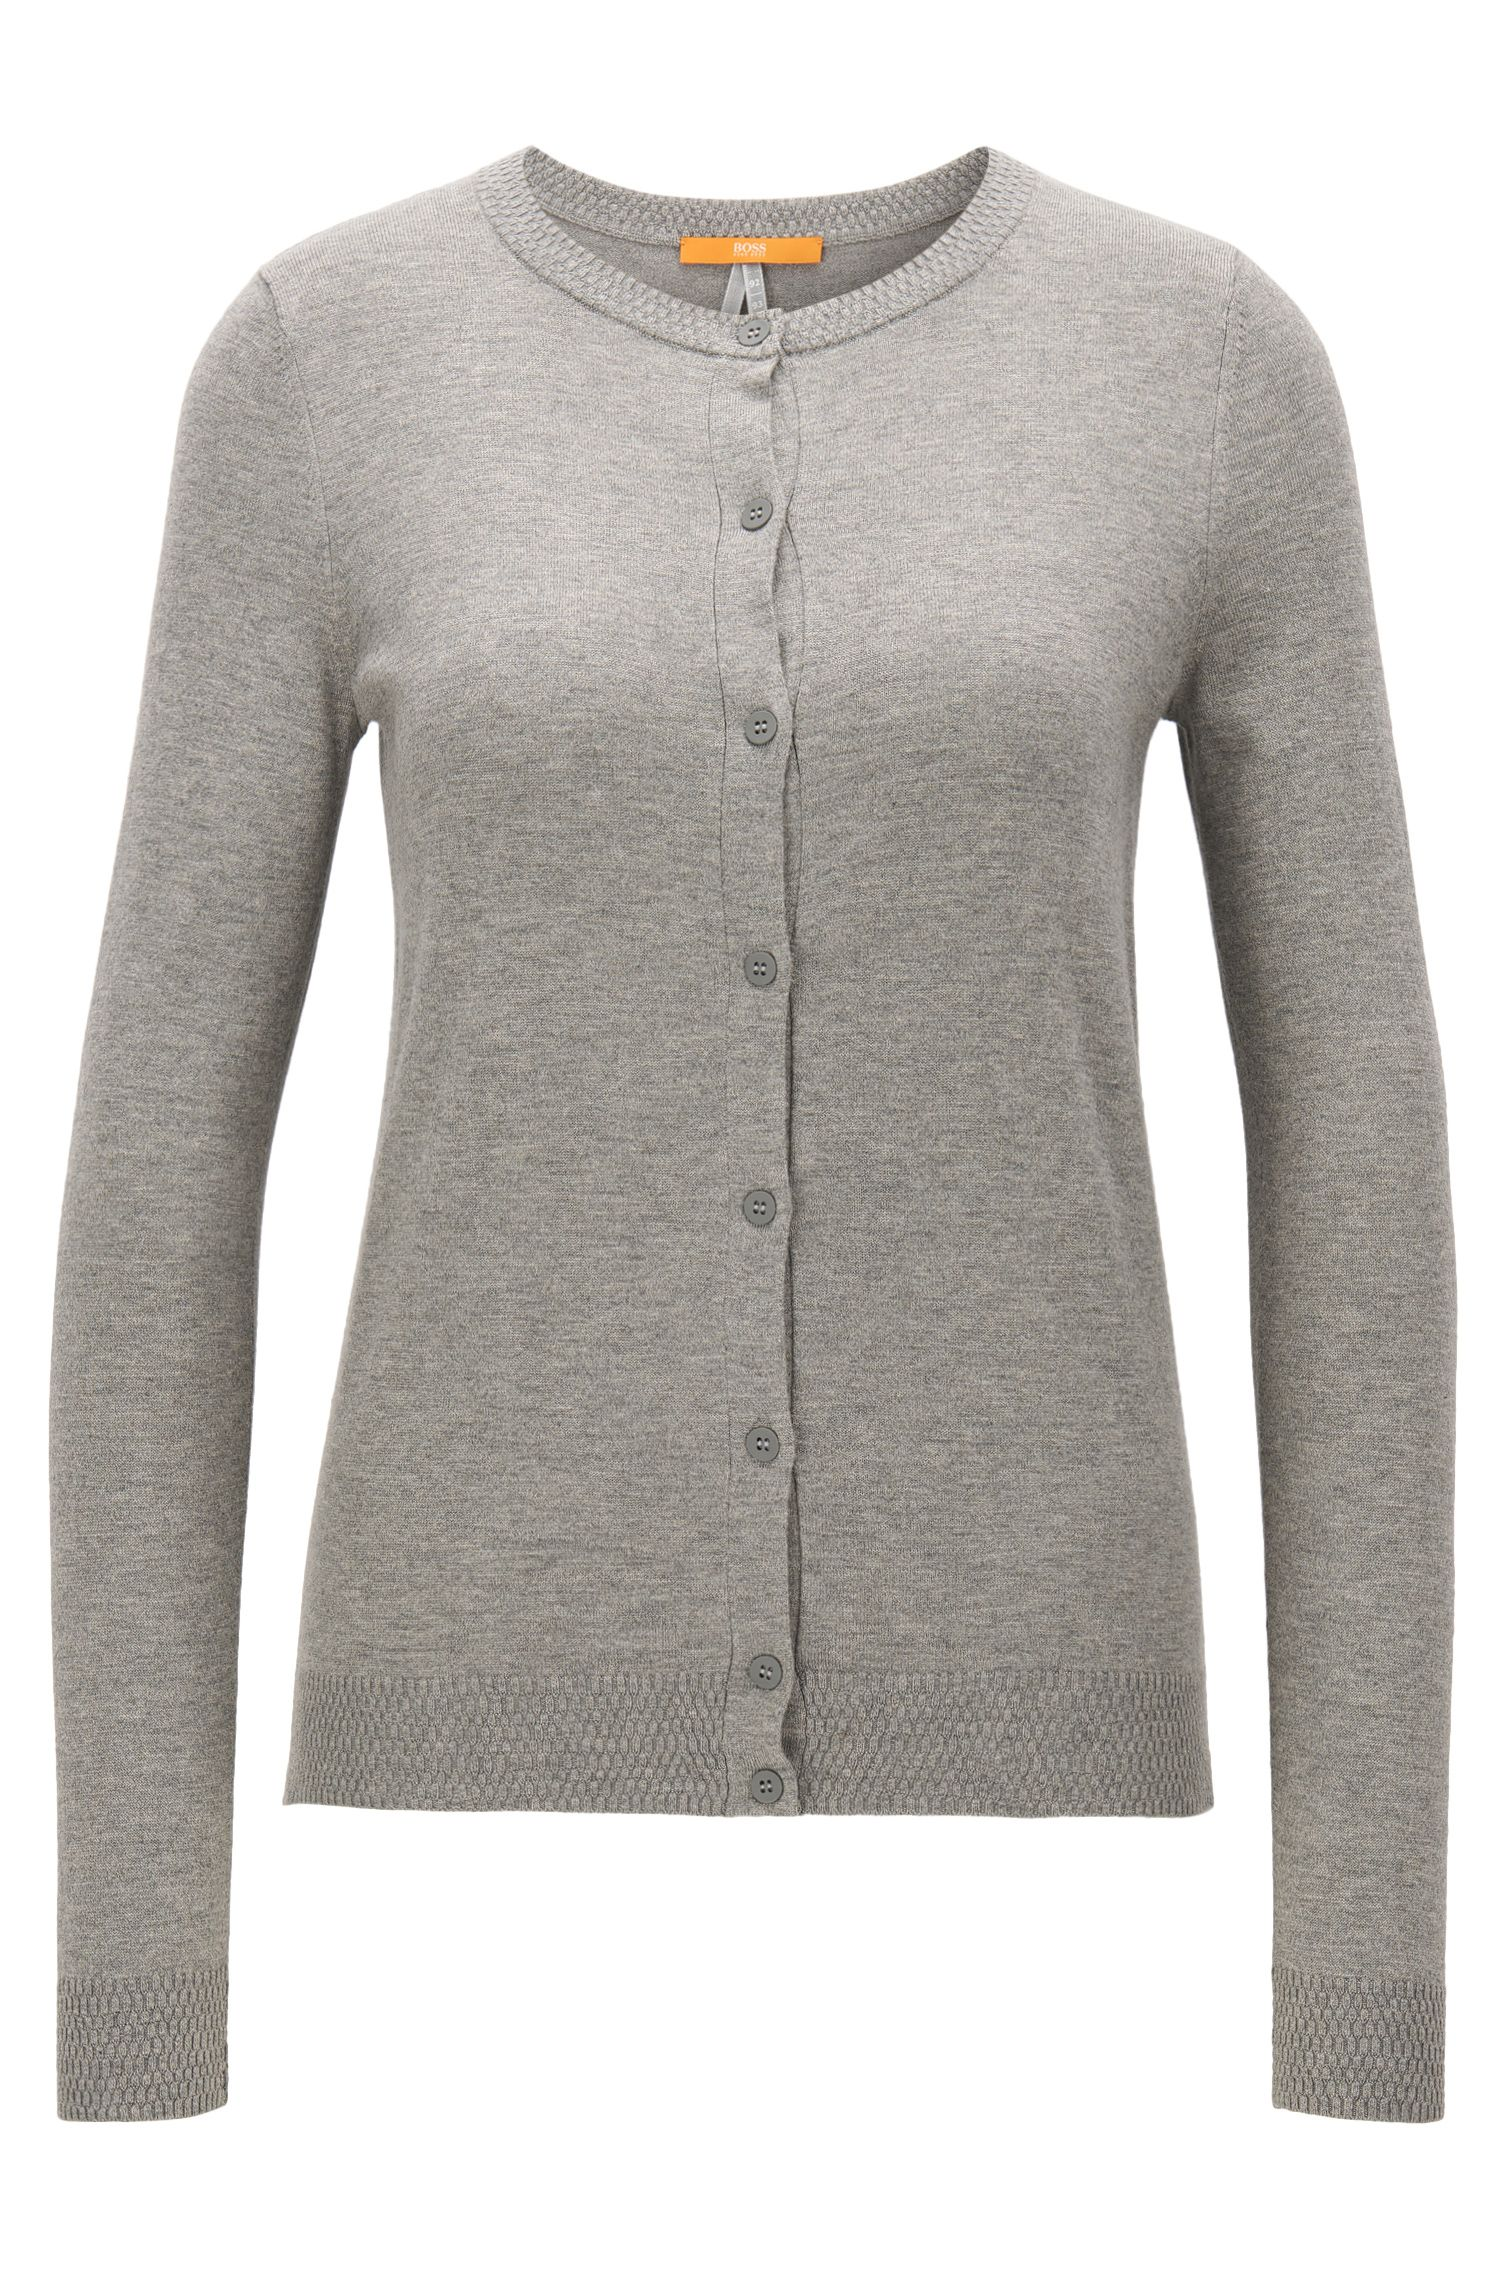 Regular-fit cardigan in a cotton blend